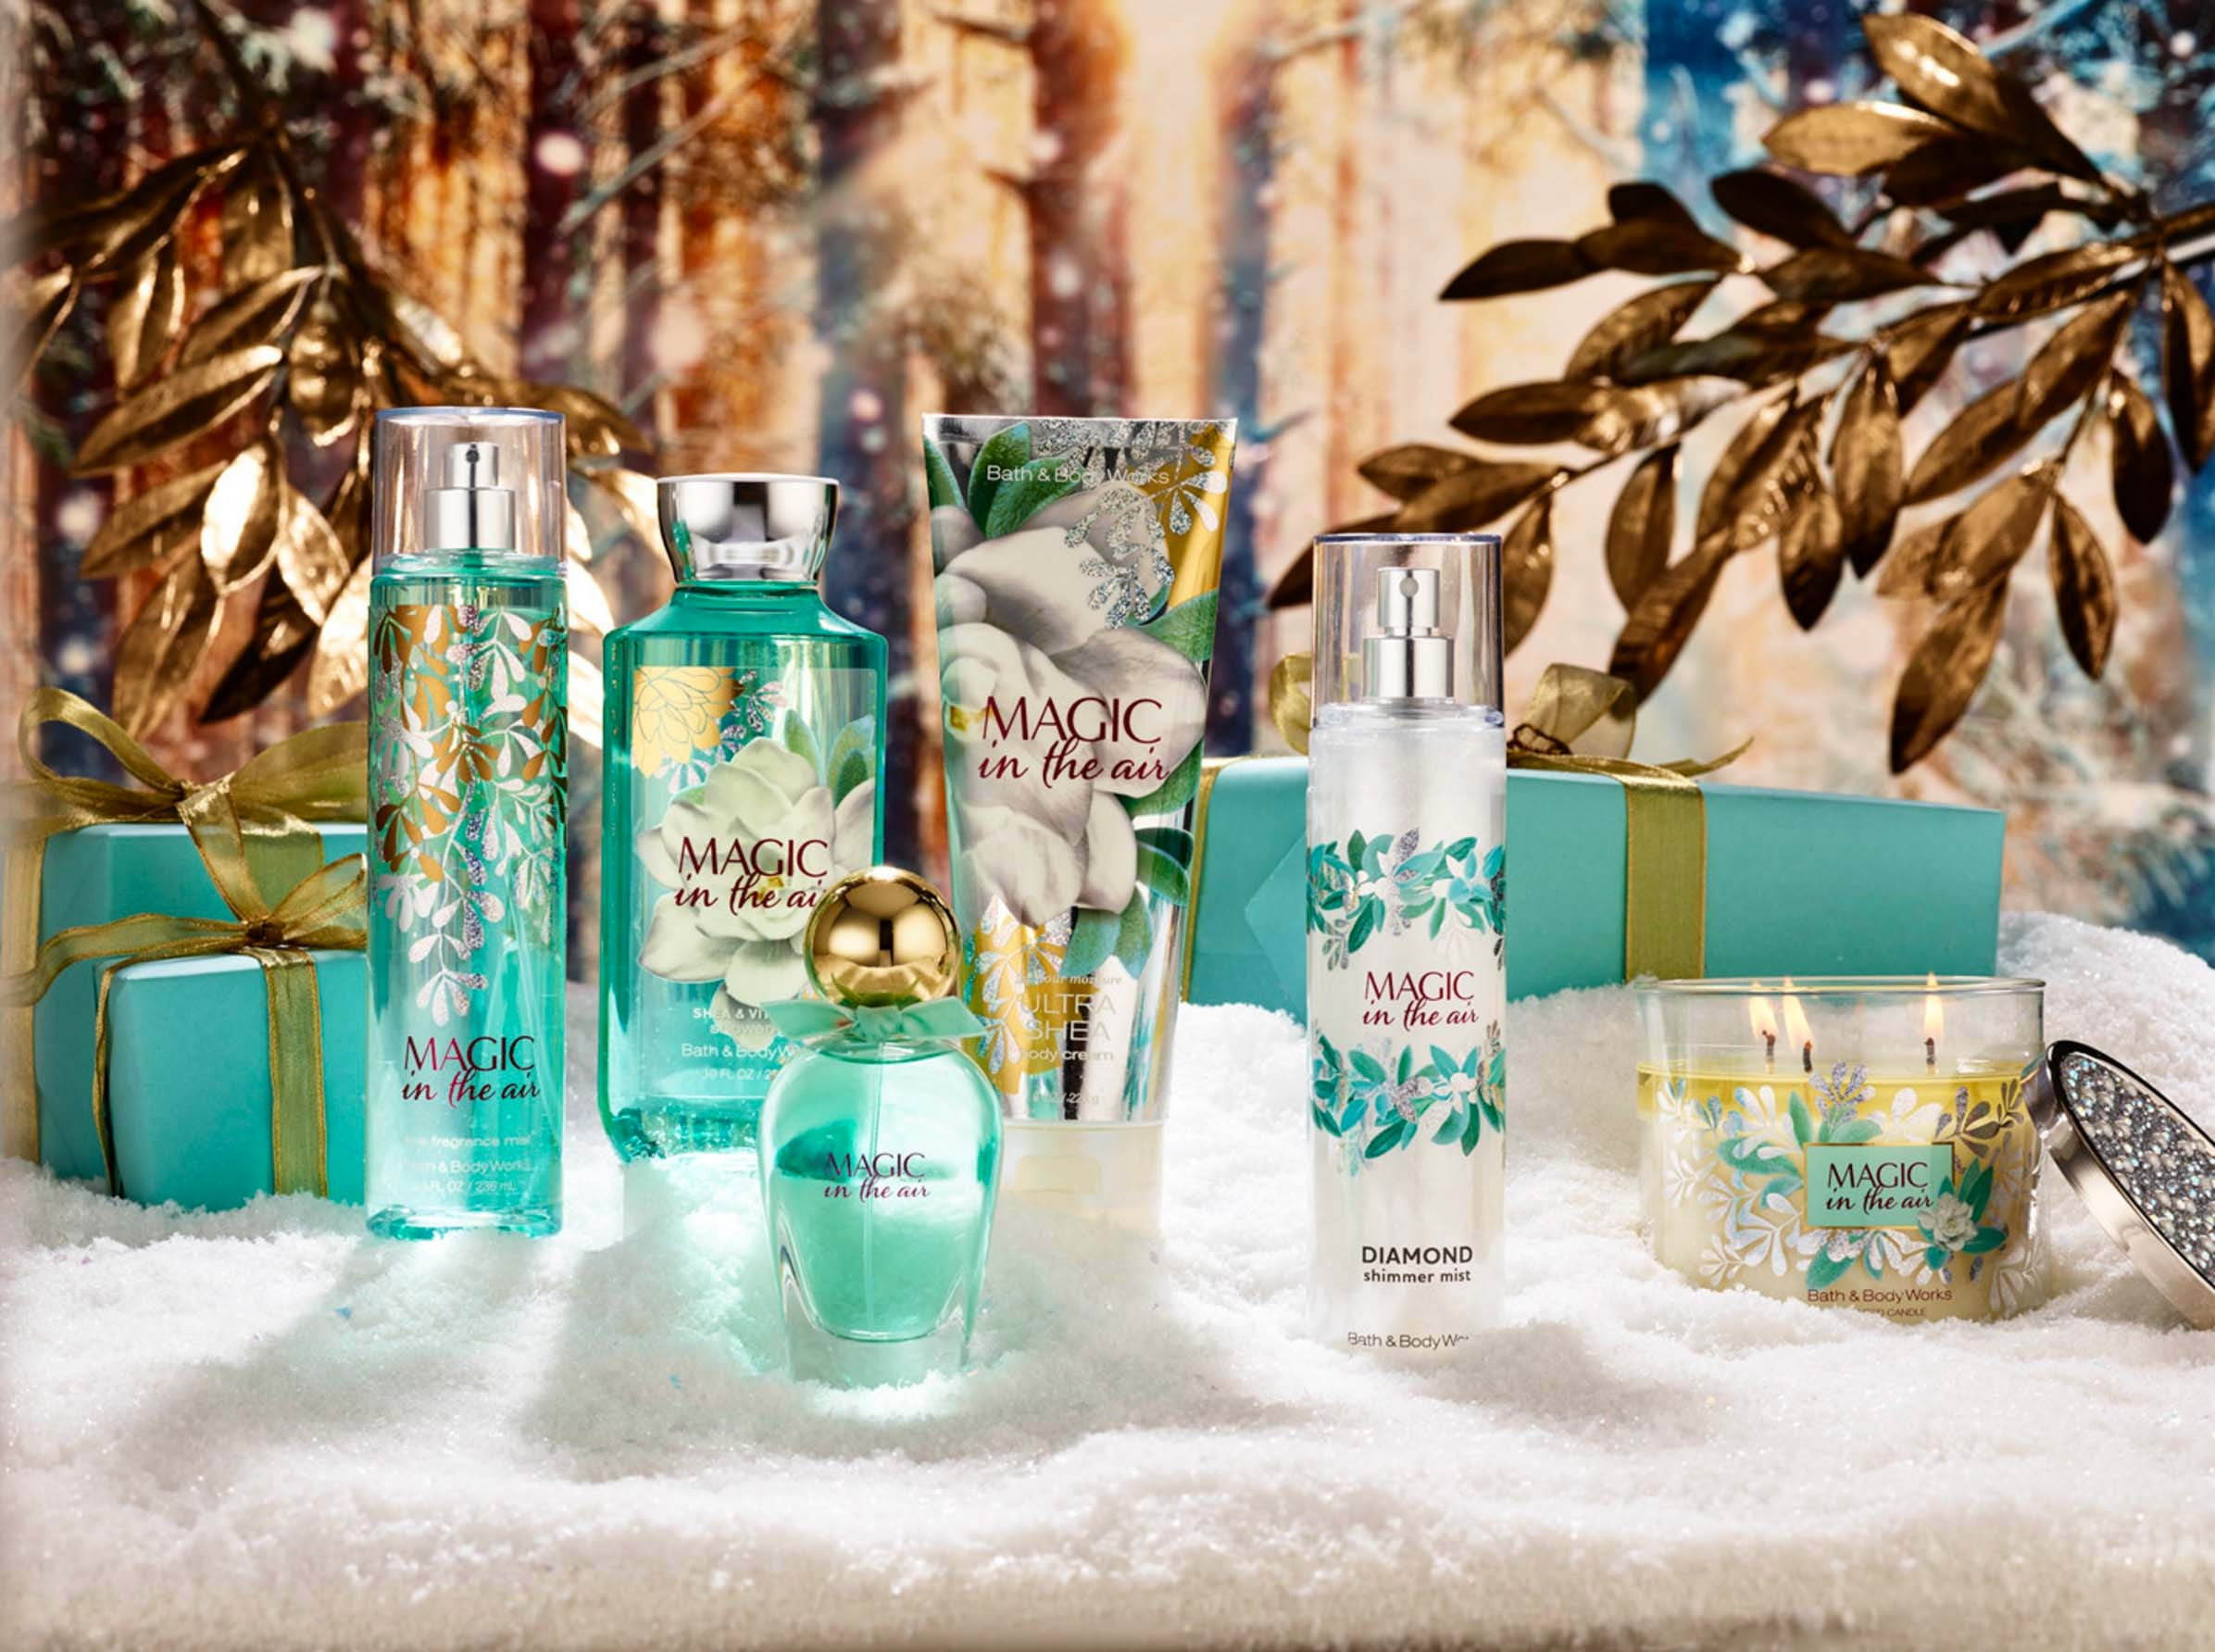 Bath And Body Works Christmas Scents 2020 When Does Bath & Body Works' Holiday Collection Launch? Here Are